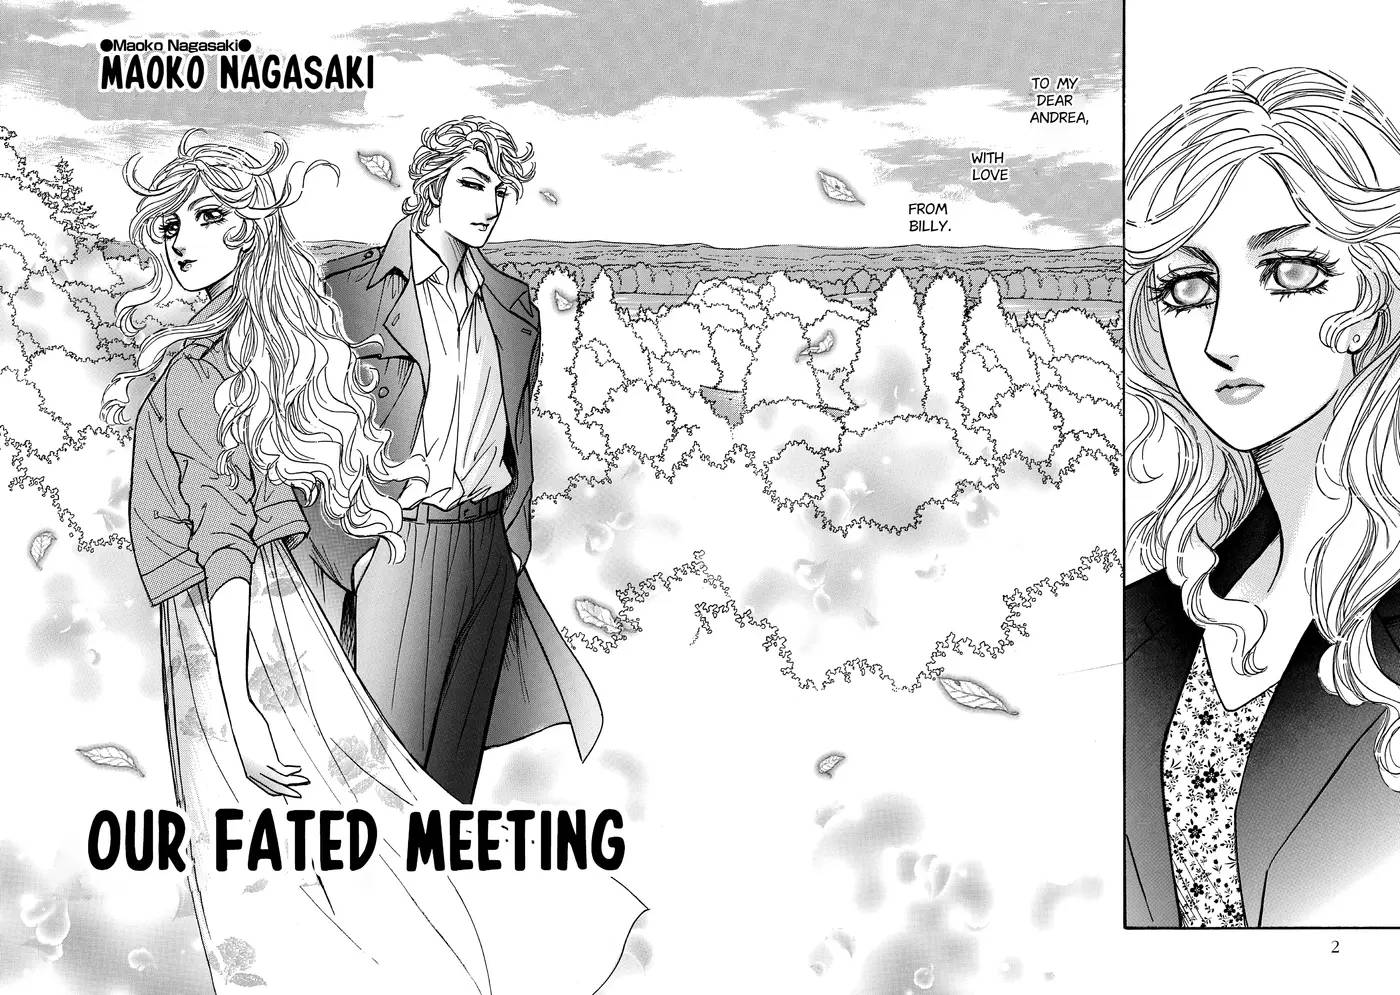 Our Fated Meeting